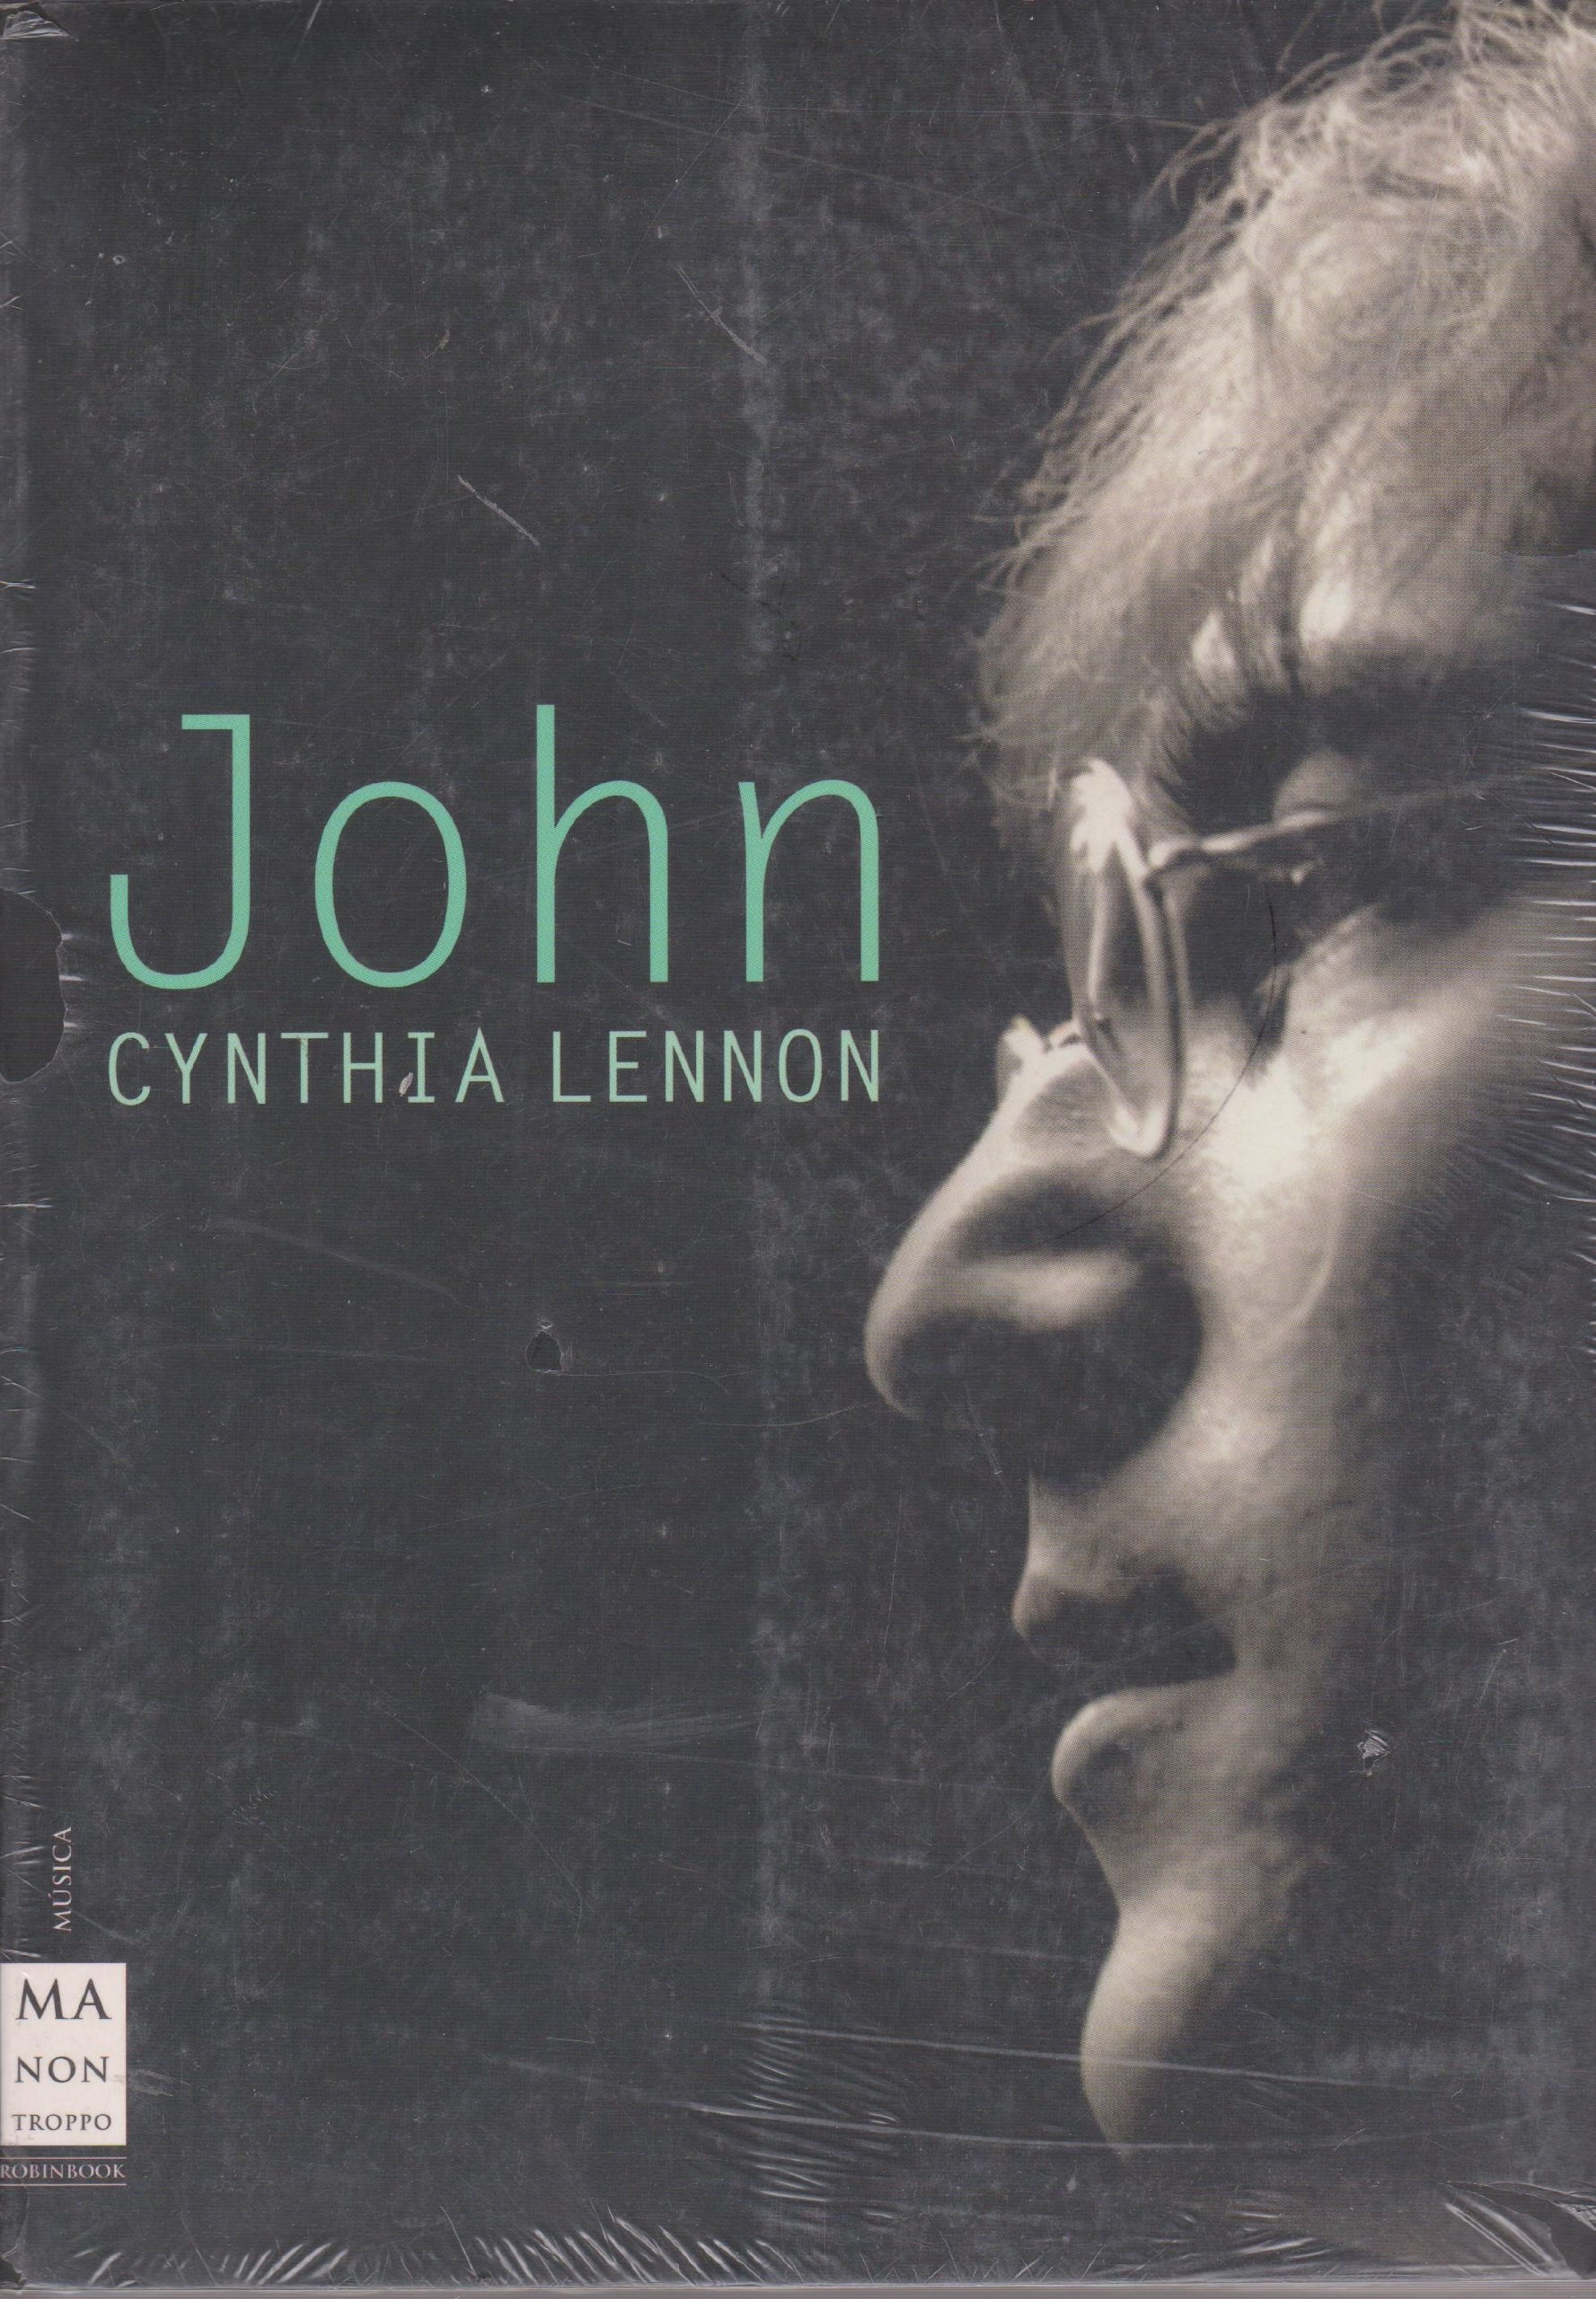 Ain't She Sweet: A Tribute To Cynthia Lennon